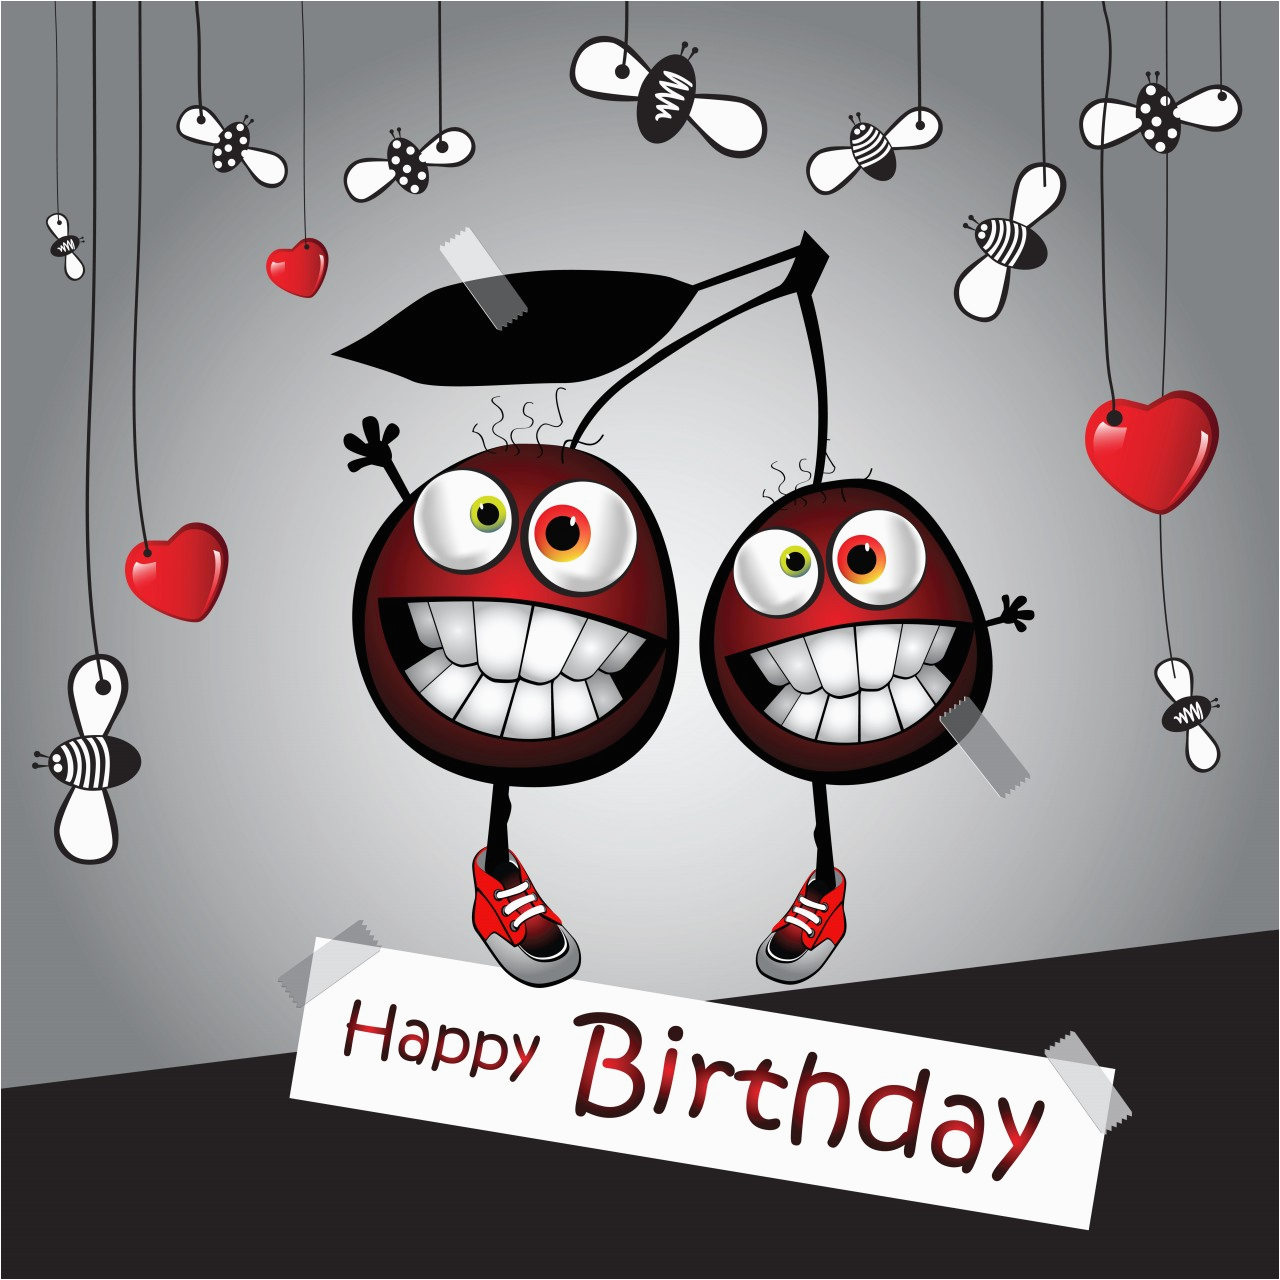 50 Happy Birthday Images For Him With Quotes Ilove Messages Free Ecard